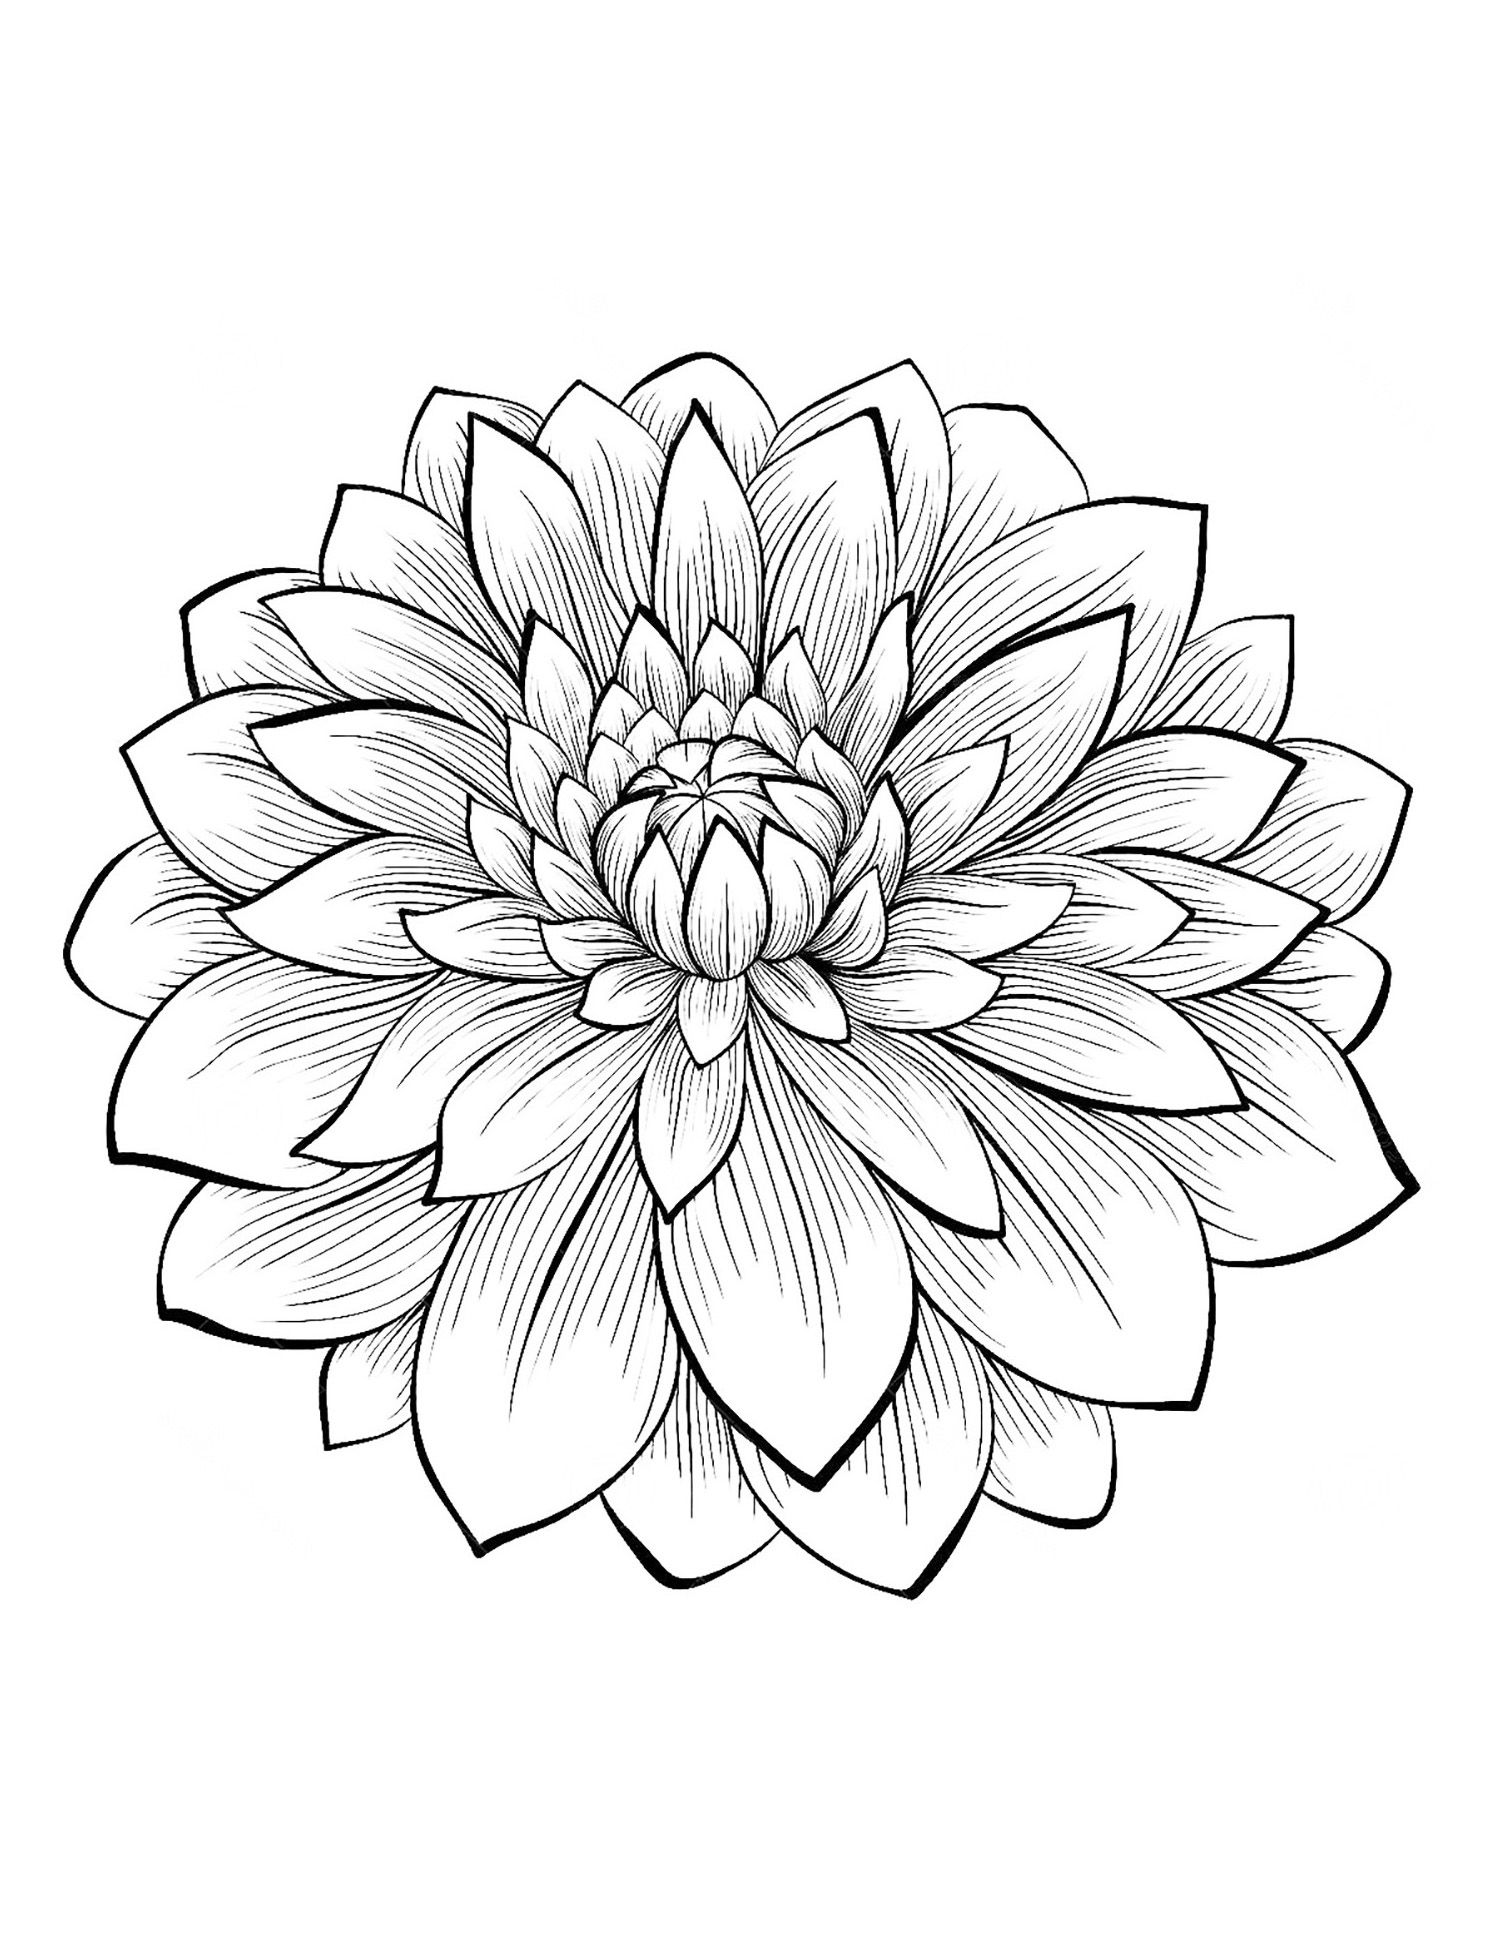 1 Dahlias To Print Amp Color From The Gallery Flowers And Vegetat